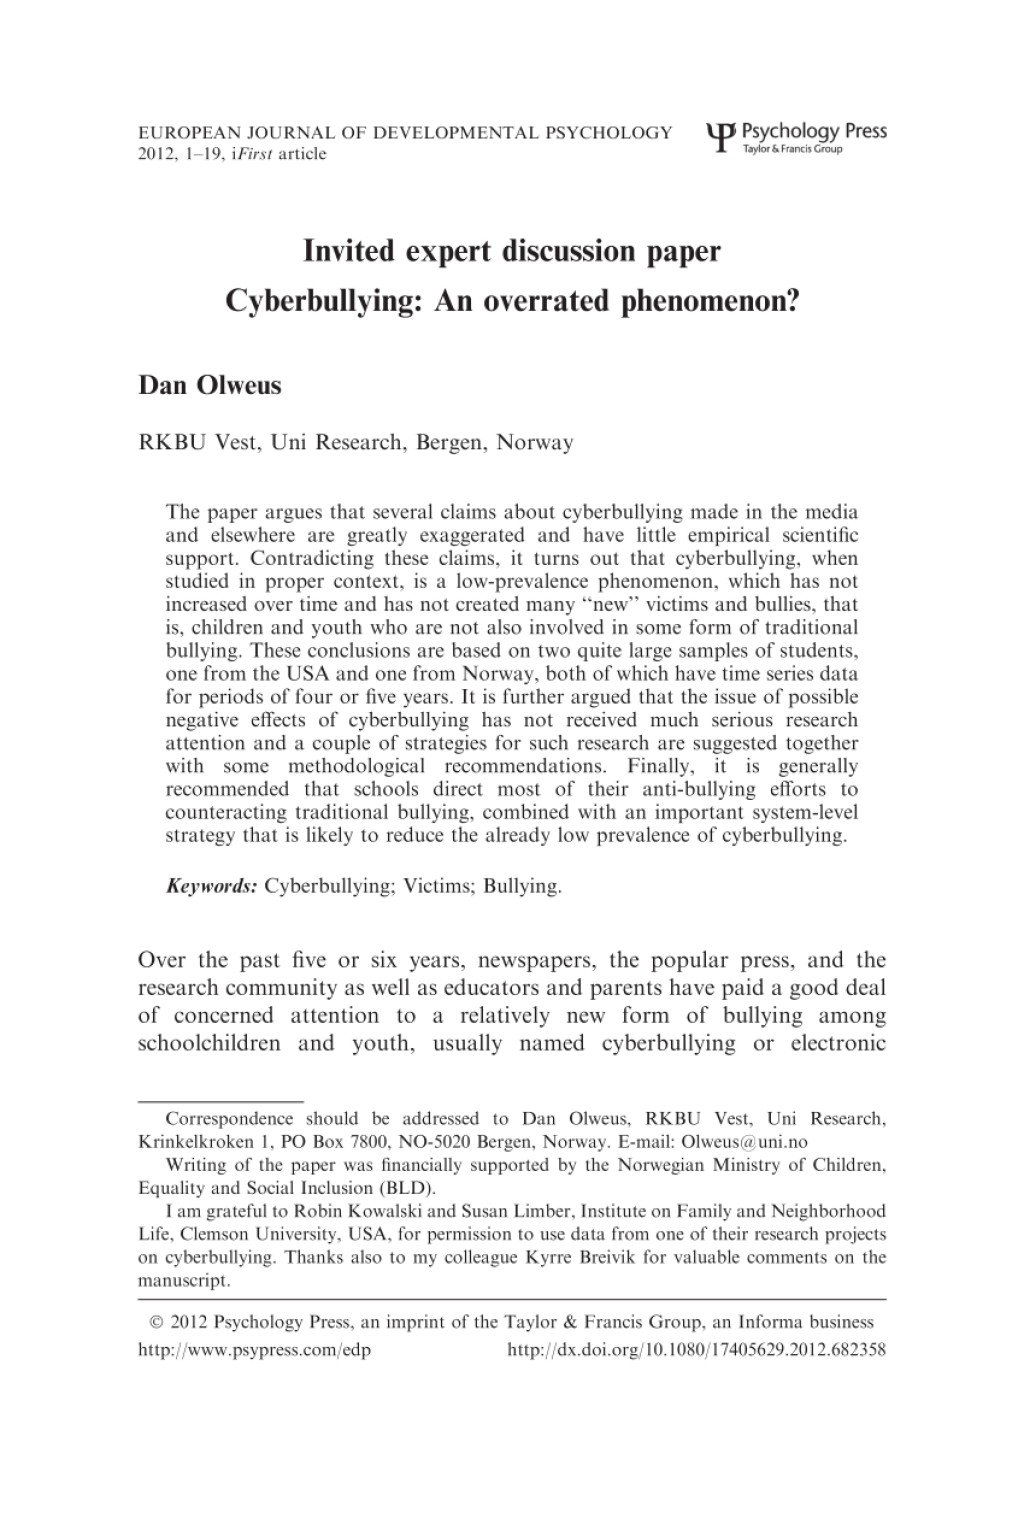 006 Research Paper Largepreview On Cyber Stirring Bullying Cyberbullying Titles Outline Large